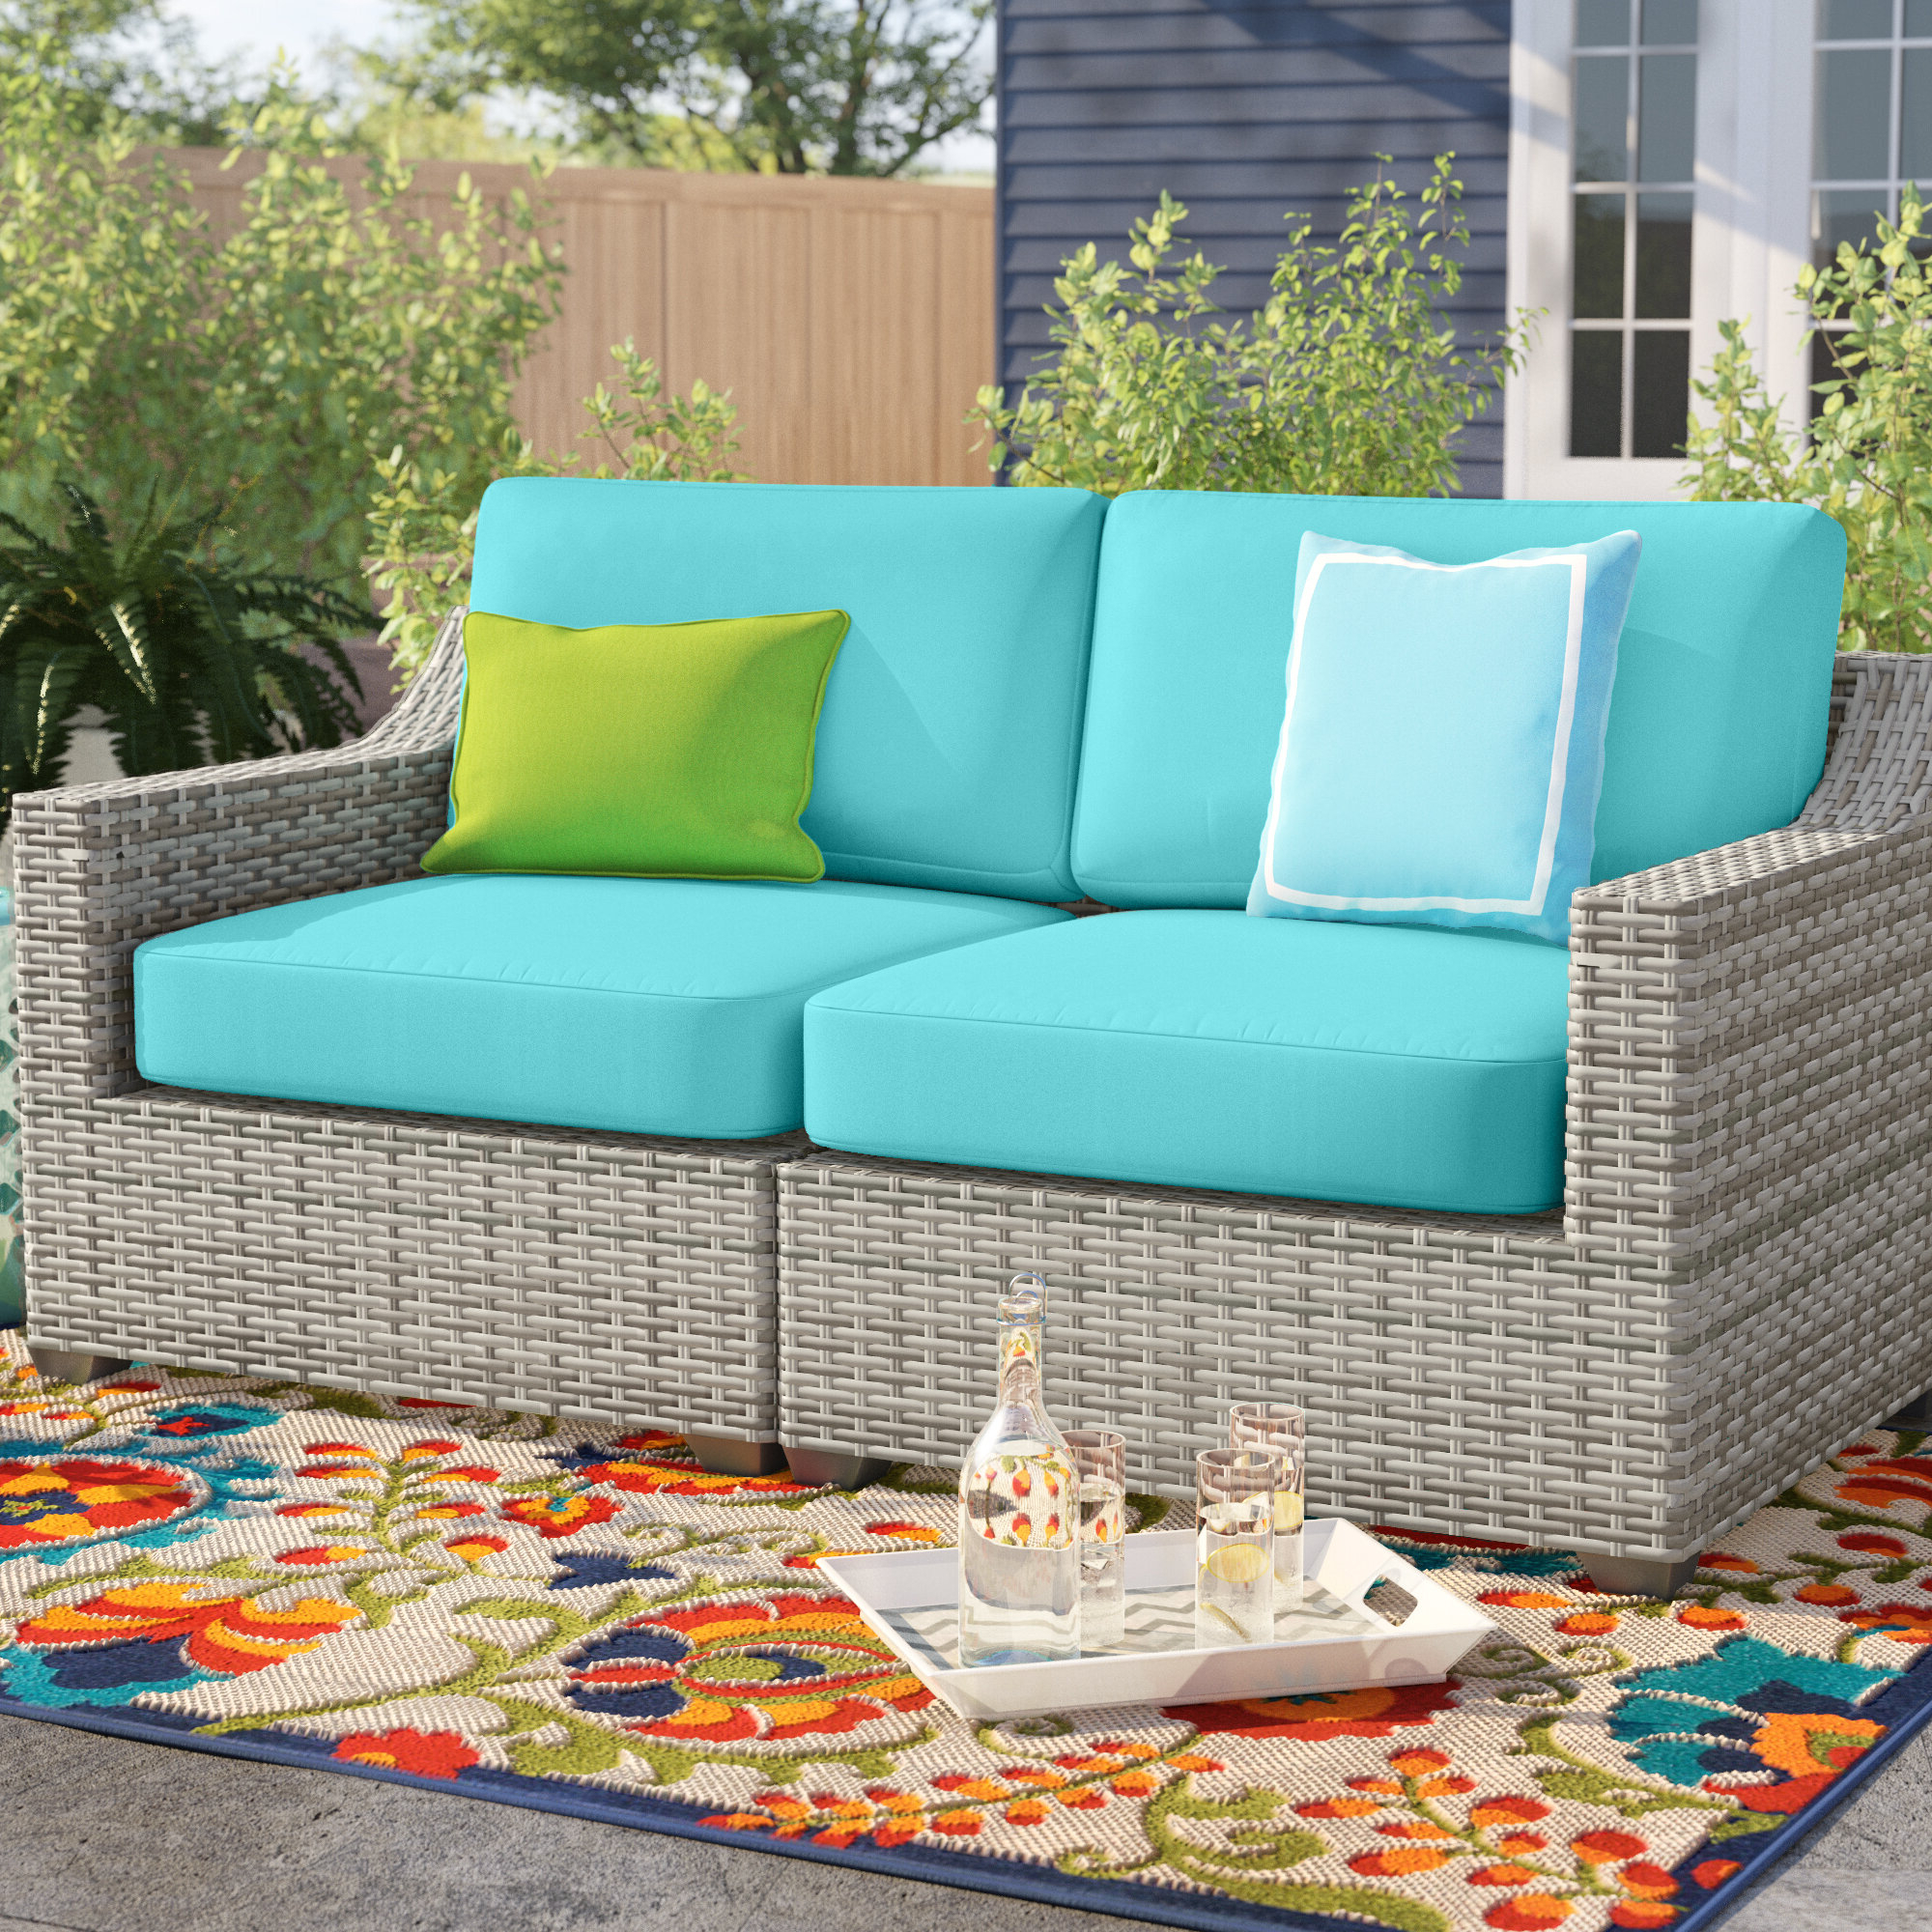 Falmouth Patio Sofas With Cushions Pertaining To 2020 Falmouth Loveseat With Cushions (View 12 of 20)